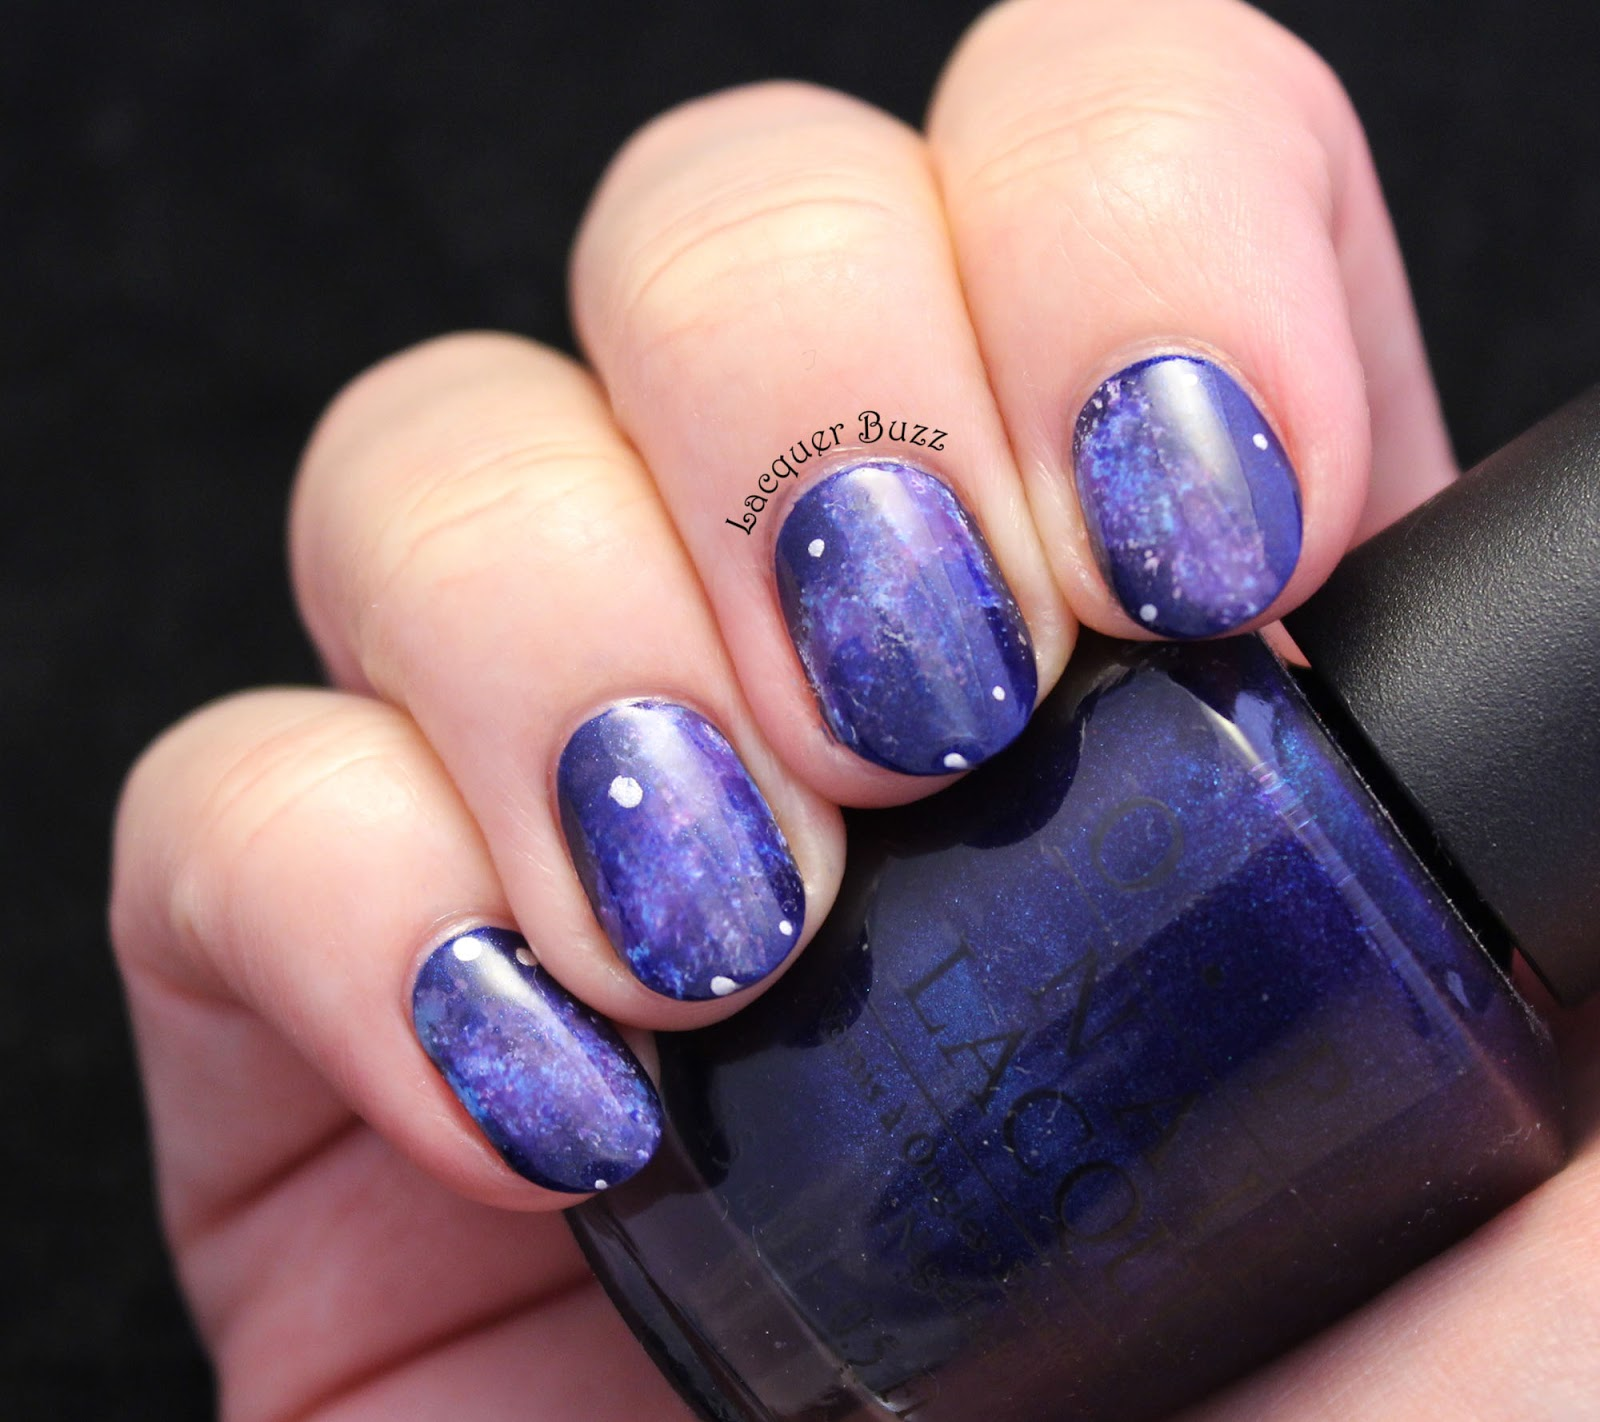 Lacquer buzz monday blues subtle galaxy as you all know galaxy nails are extremely easy to create you only need a makeup sponge or any type of sponge really i usually use sponge tip makeup solutioingenieria Gallery